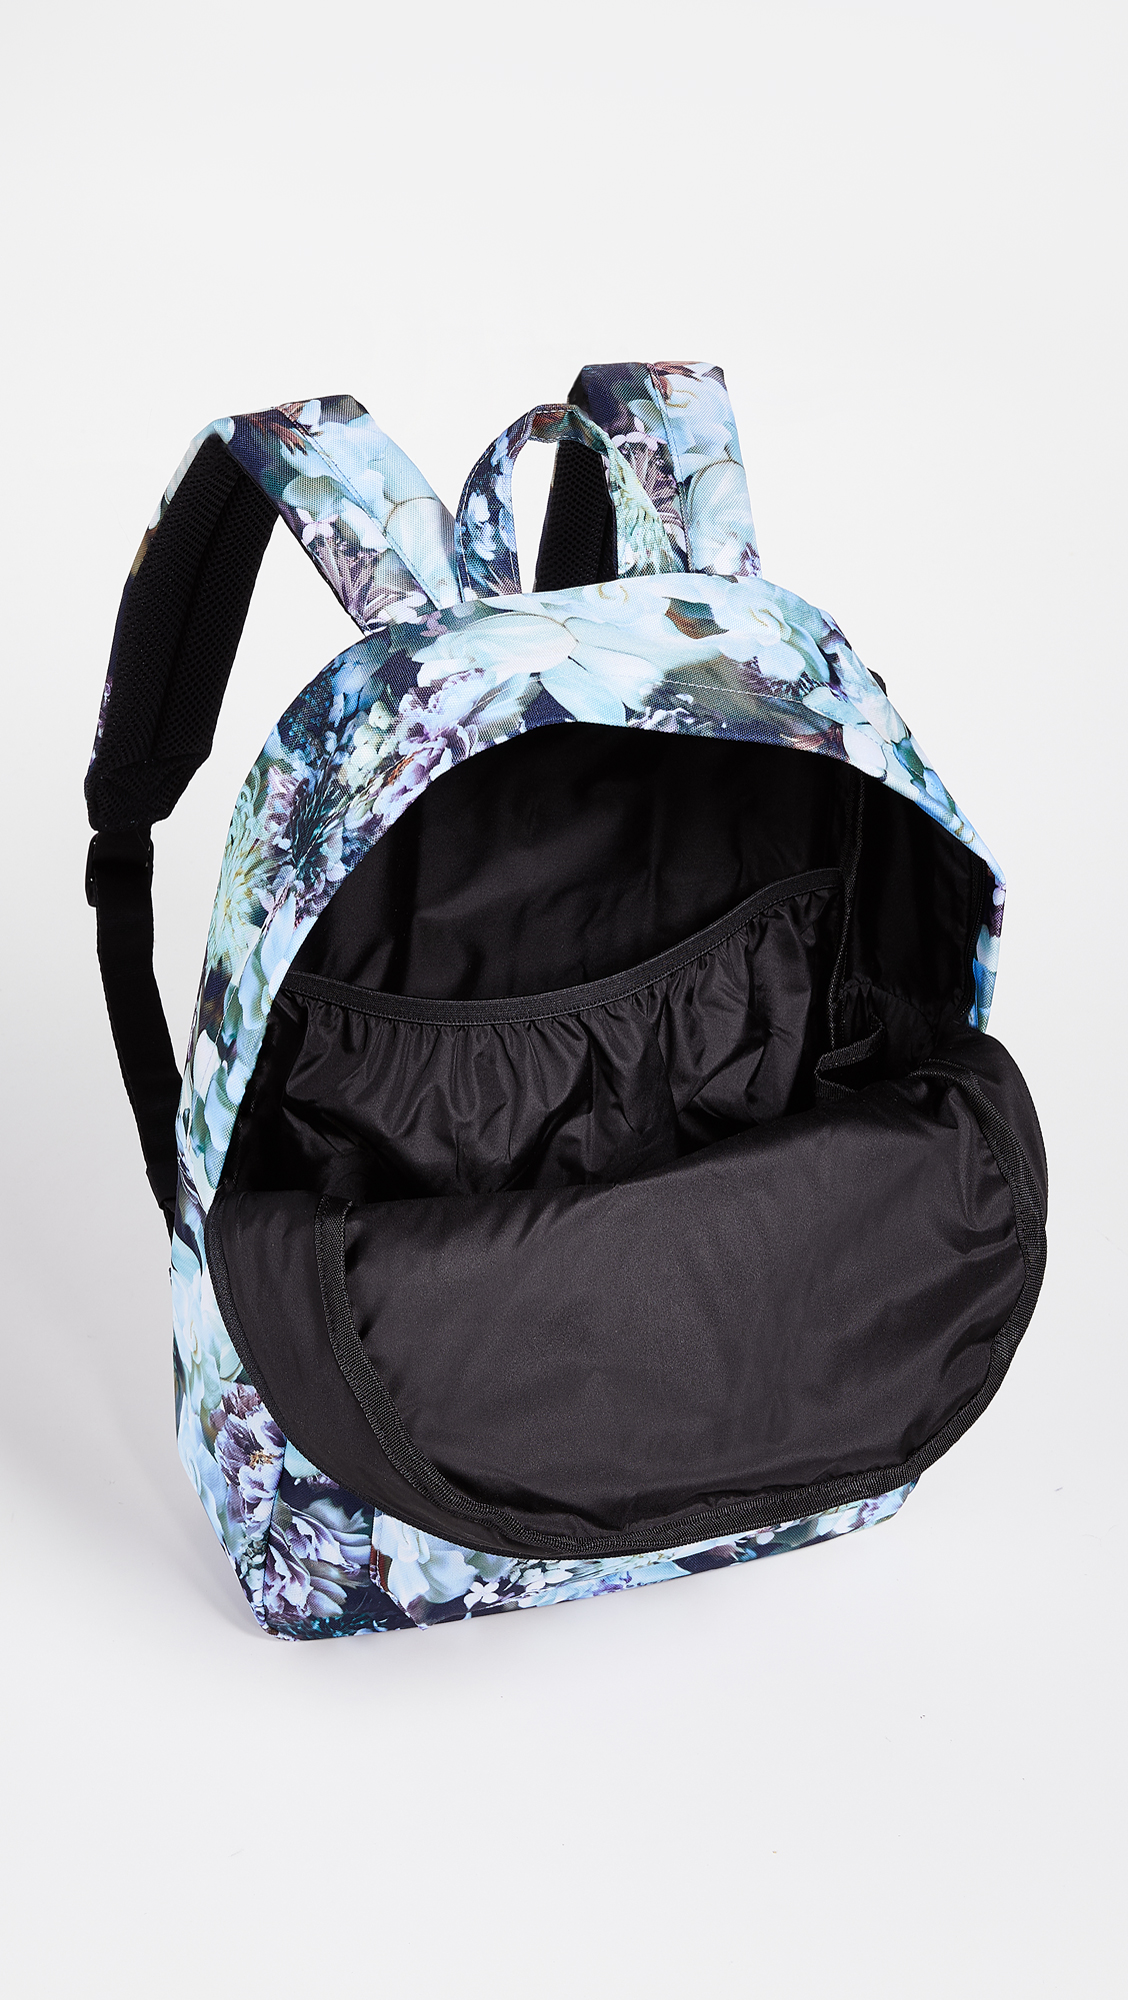 8a3d6d1c776 Herschel Supply Co. x Hoffman Heritage Backpack